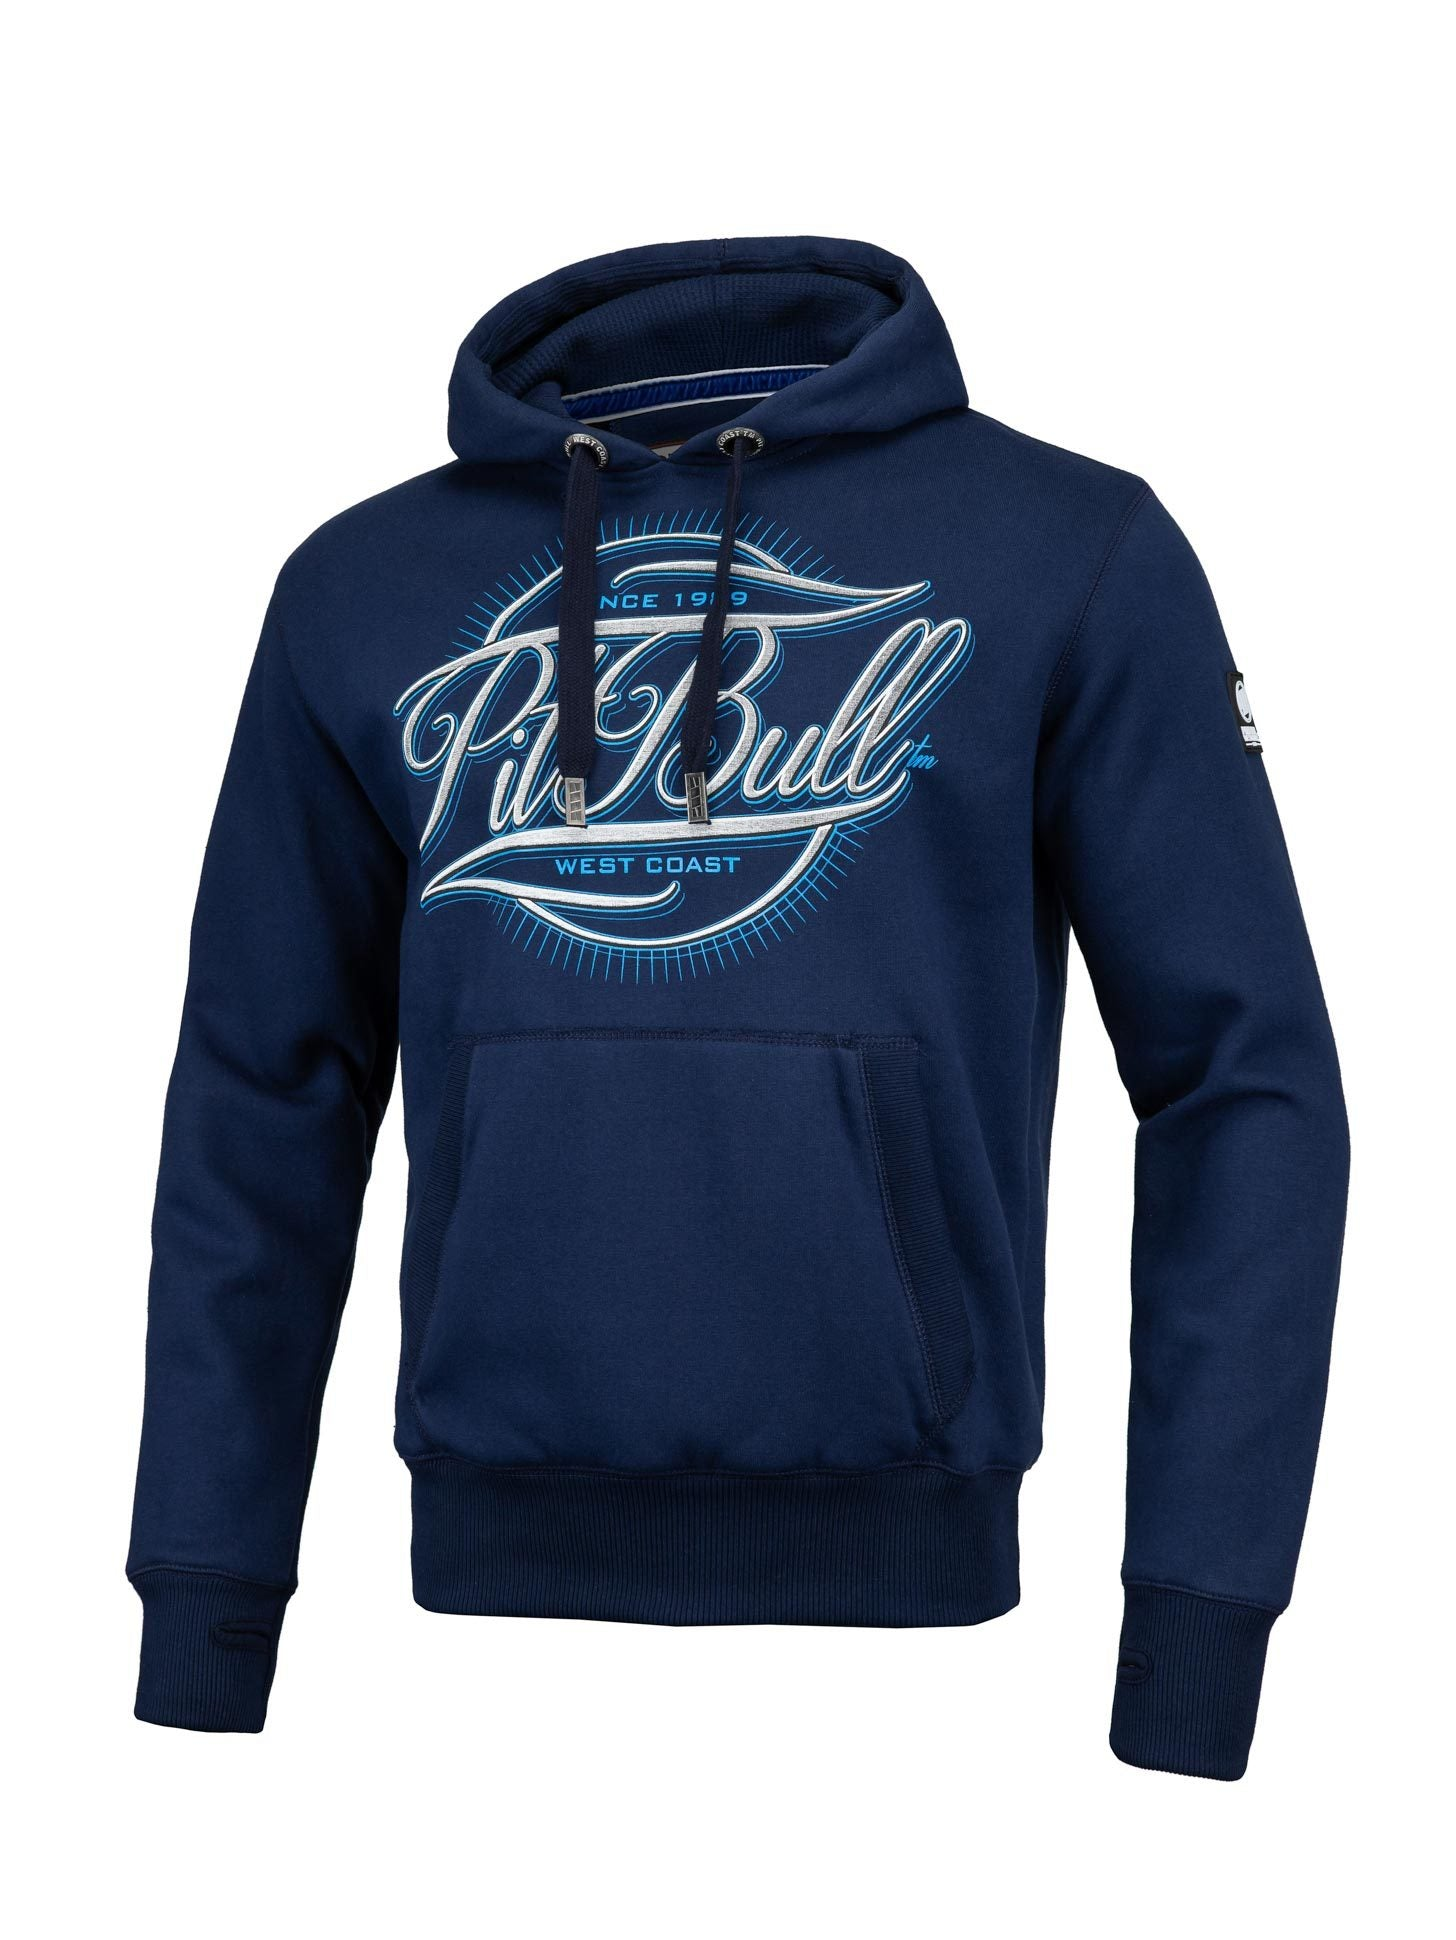 PITBULL IR HOODIE DARK NAVY - pitbullwestcoast